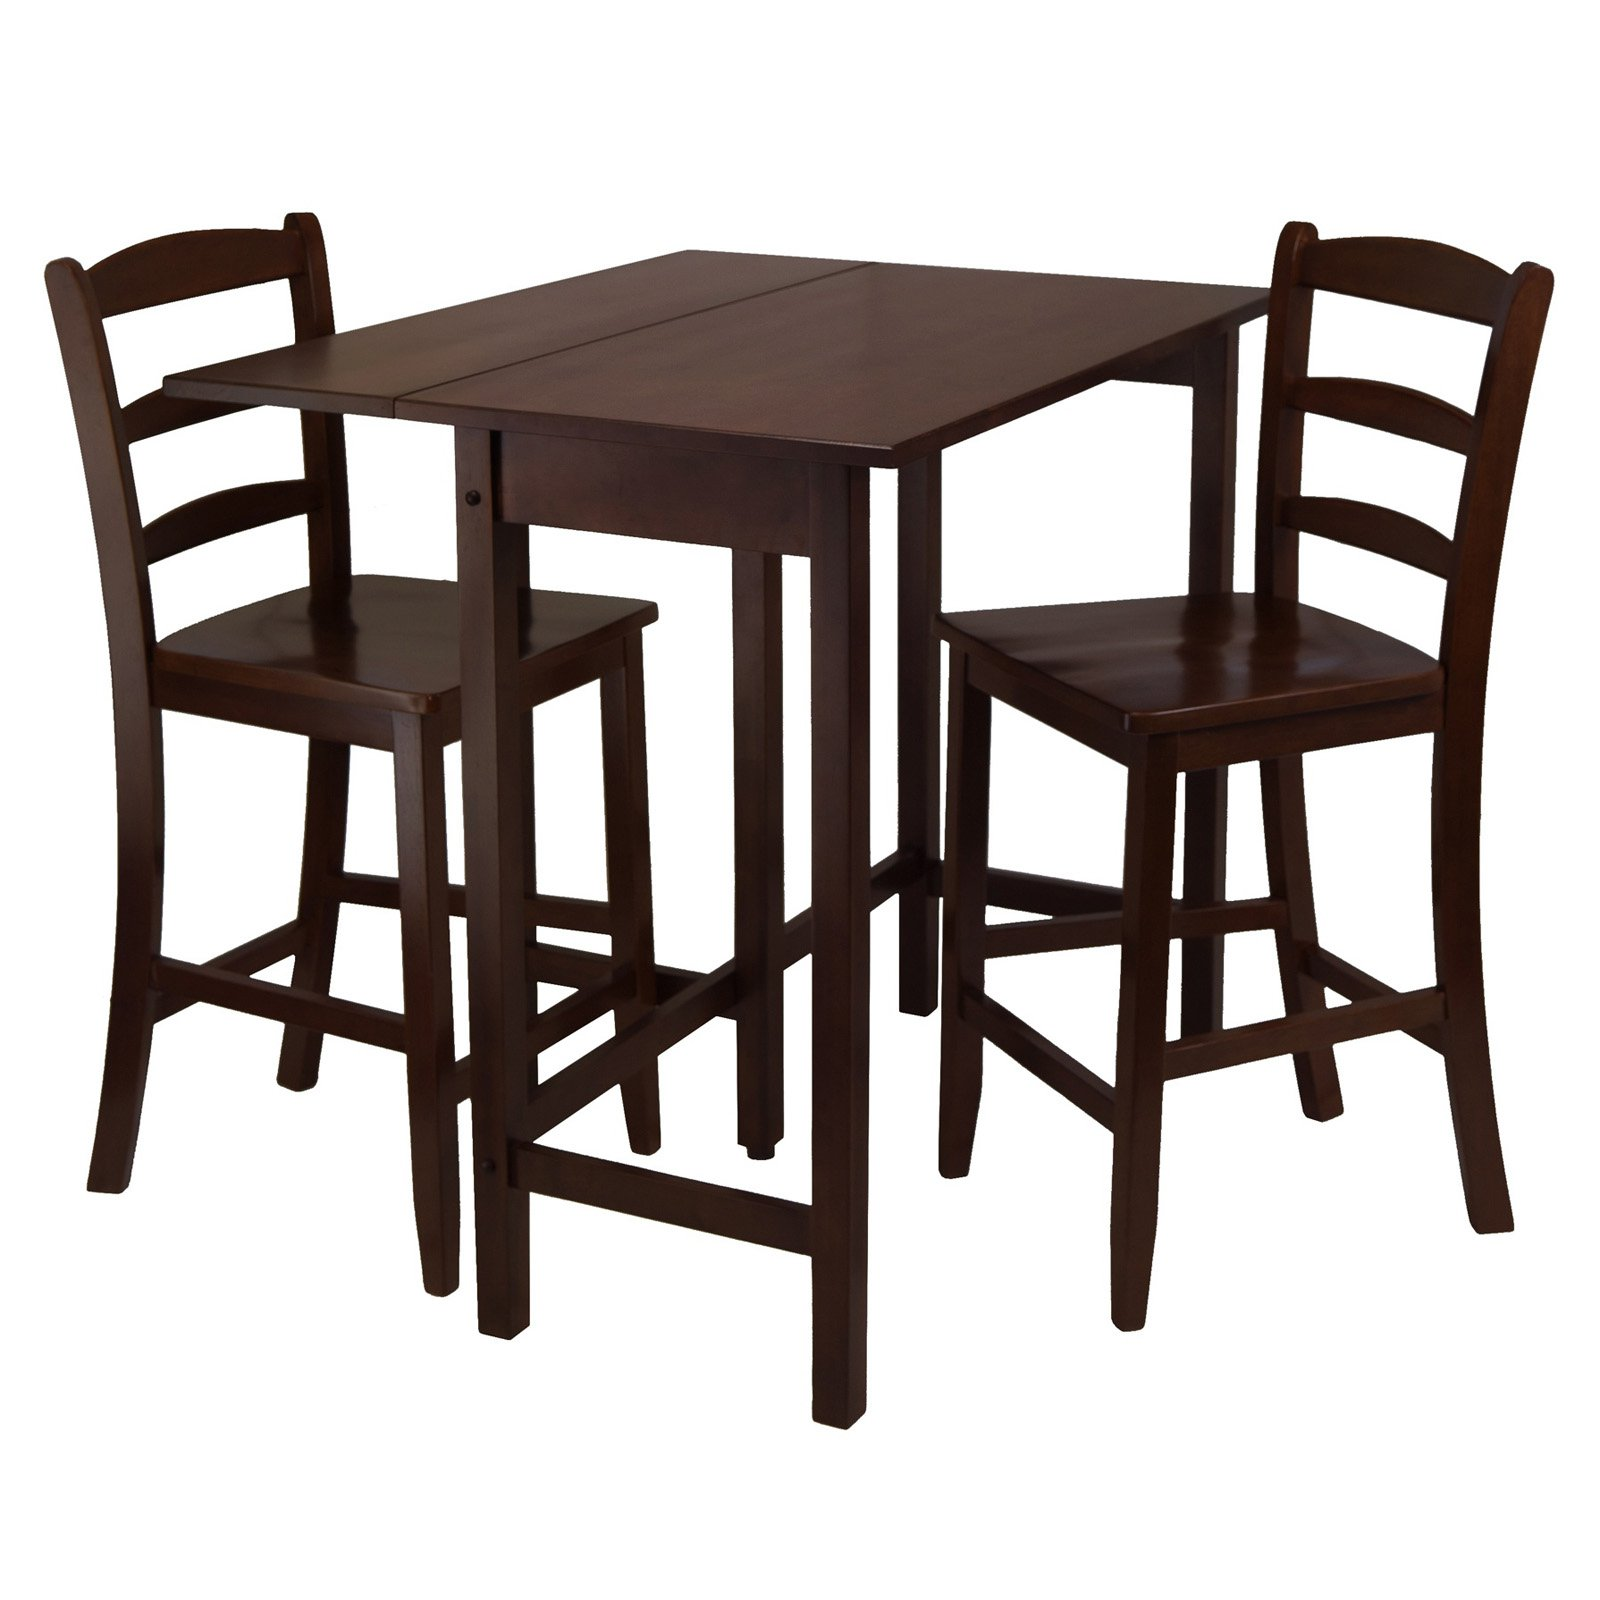 Lynnwood 3-Pc Drop Leaf High Table with 2 Counter Ladder Back Stool/Chair